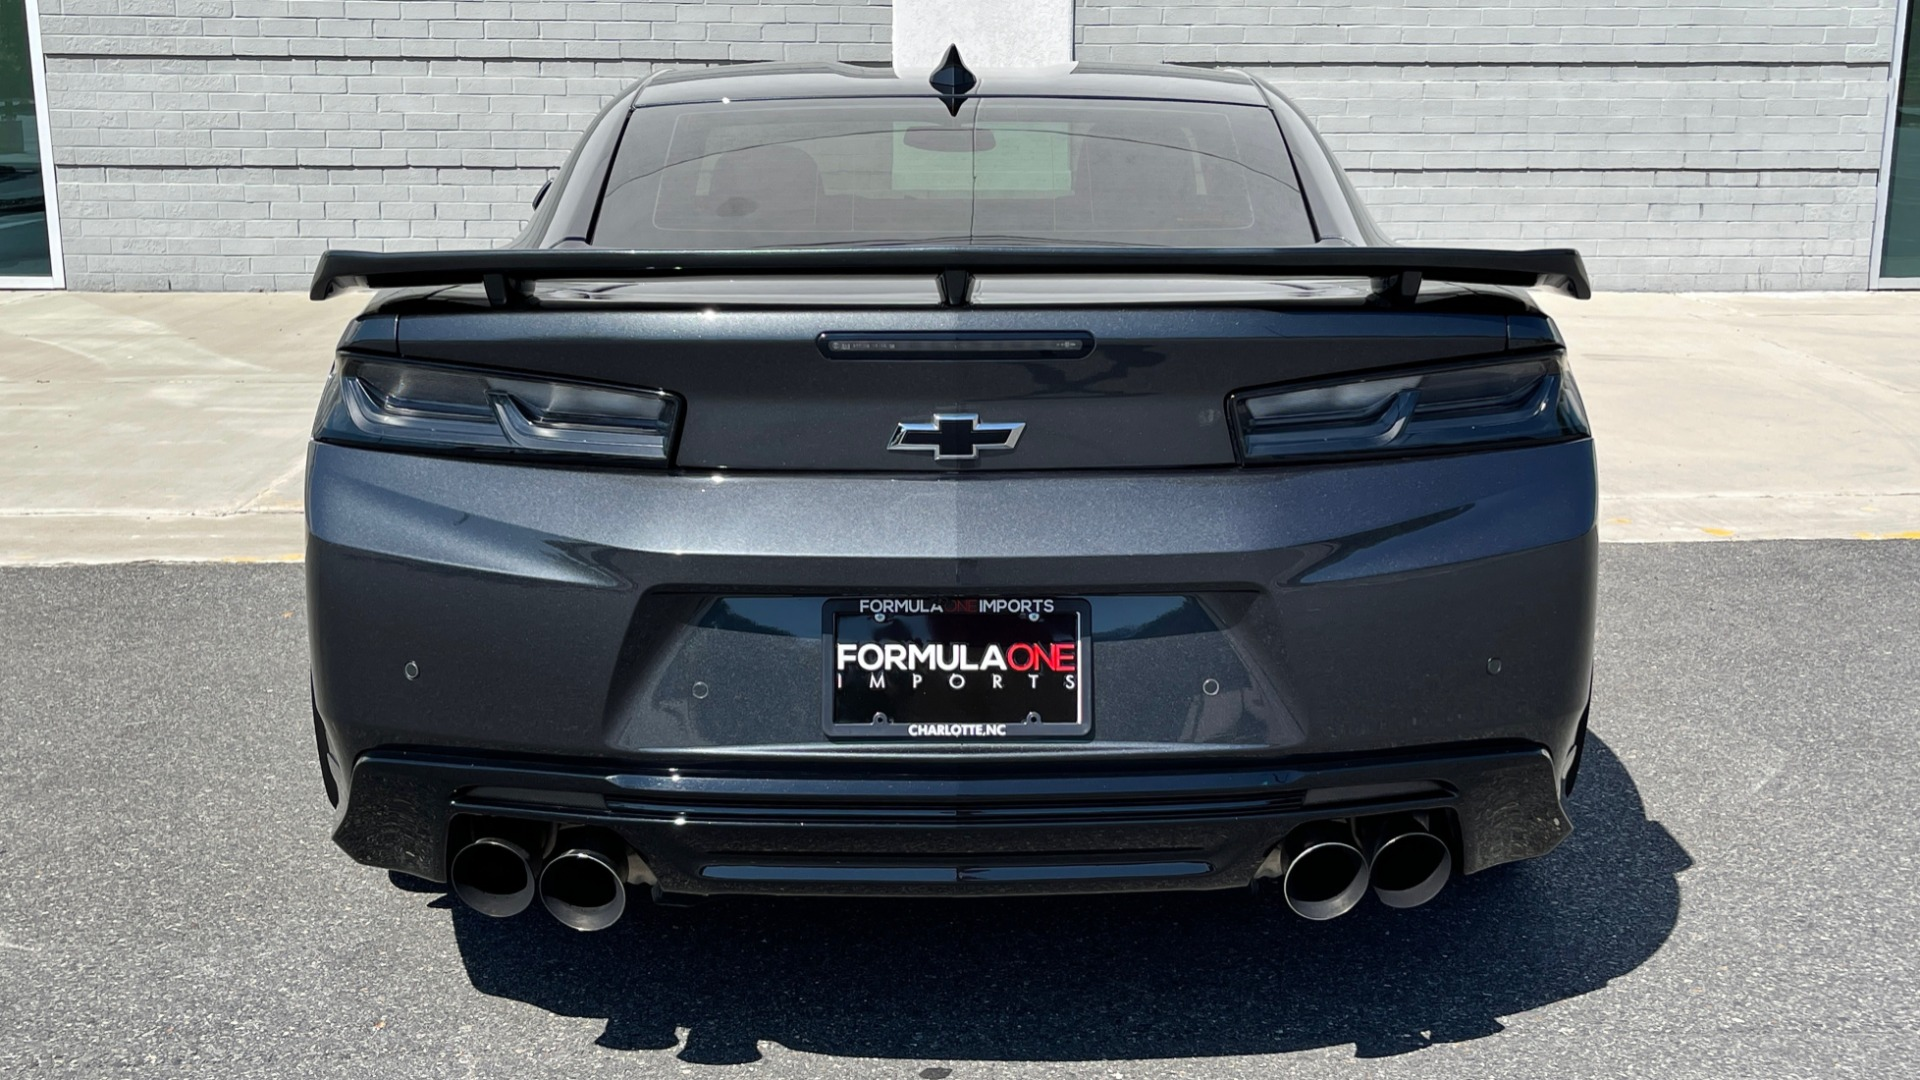 Used 2018 Chevrolet CAMARO ZL1 SUPERCHARGED COUPE 850HP / 10-SPD AUTO / NAV / BOSE / REARVIEW for sale $59,995 at Formula Imports in Charlotte NC 28227 24